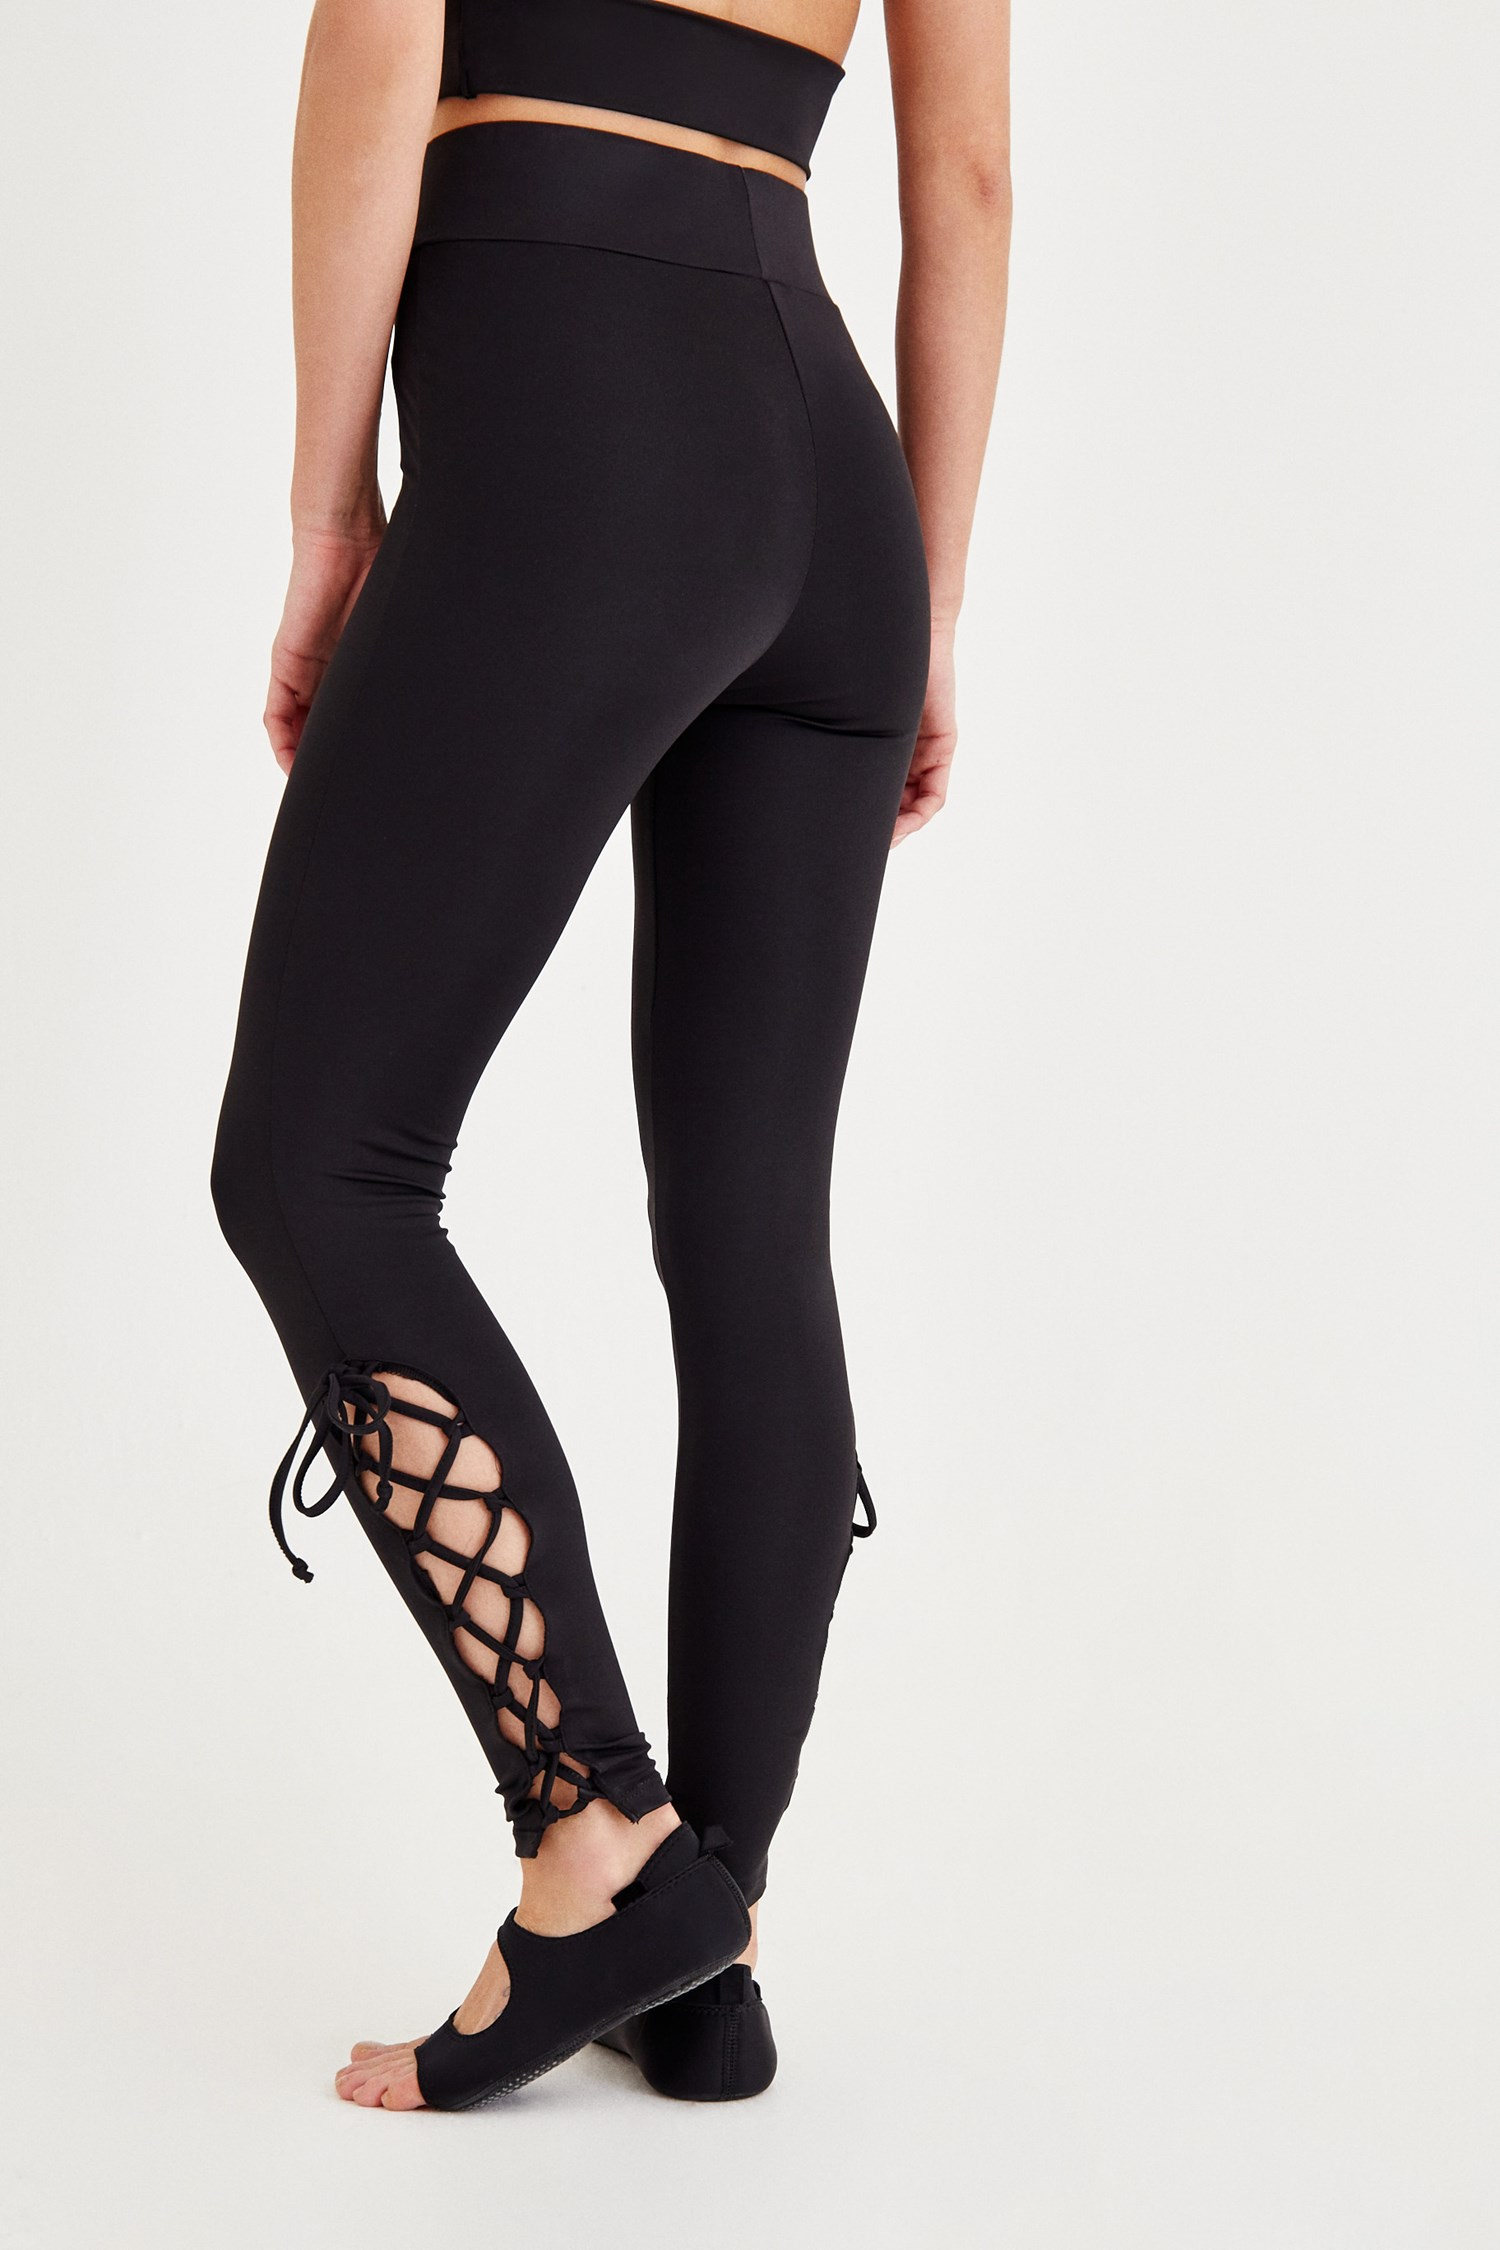 Women Black Sport Tights with Binding Detailed